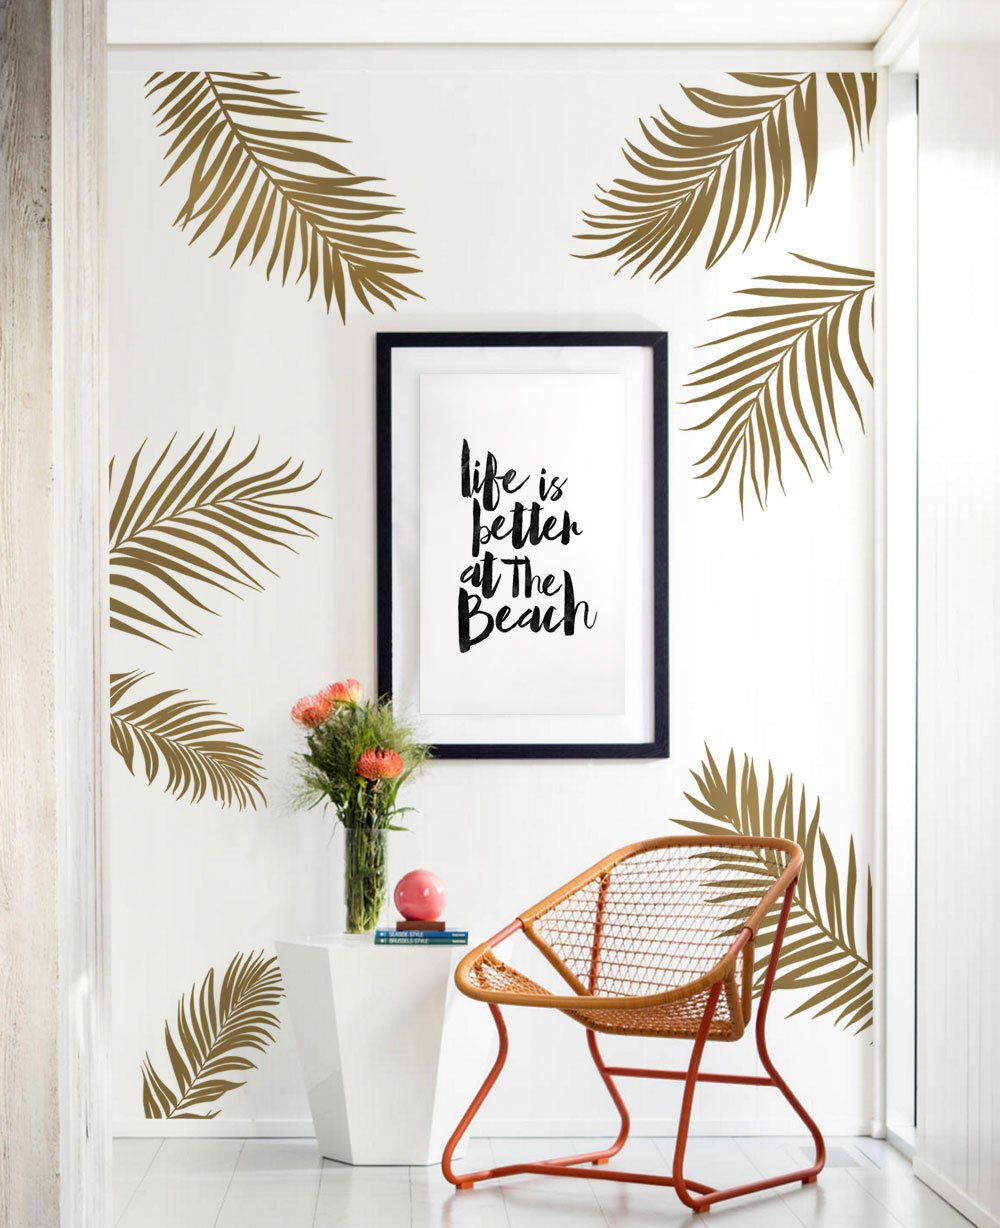 Simple Shapes Palm Leaves Wall Decal - Gold Metallic by Simple Shapes (Image #1)